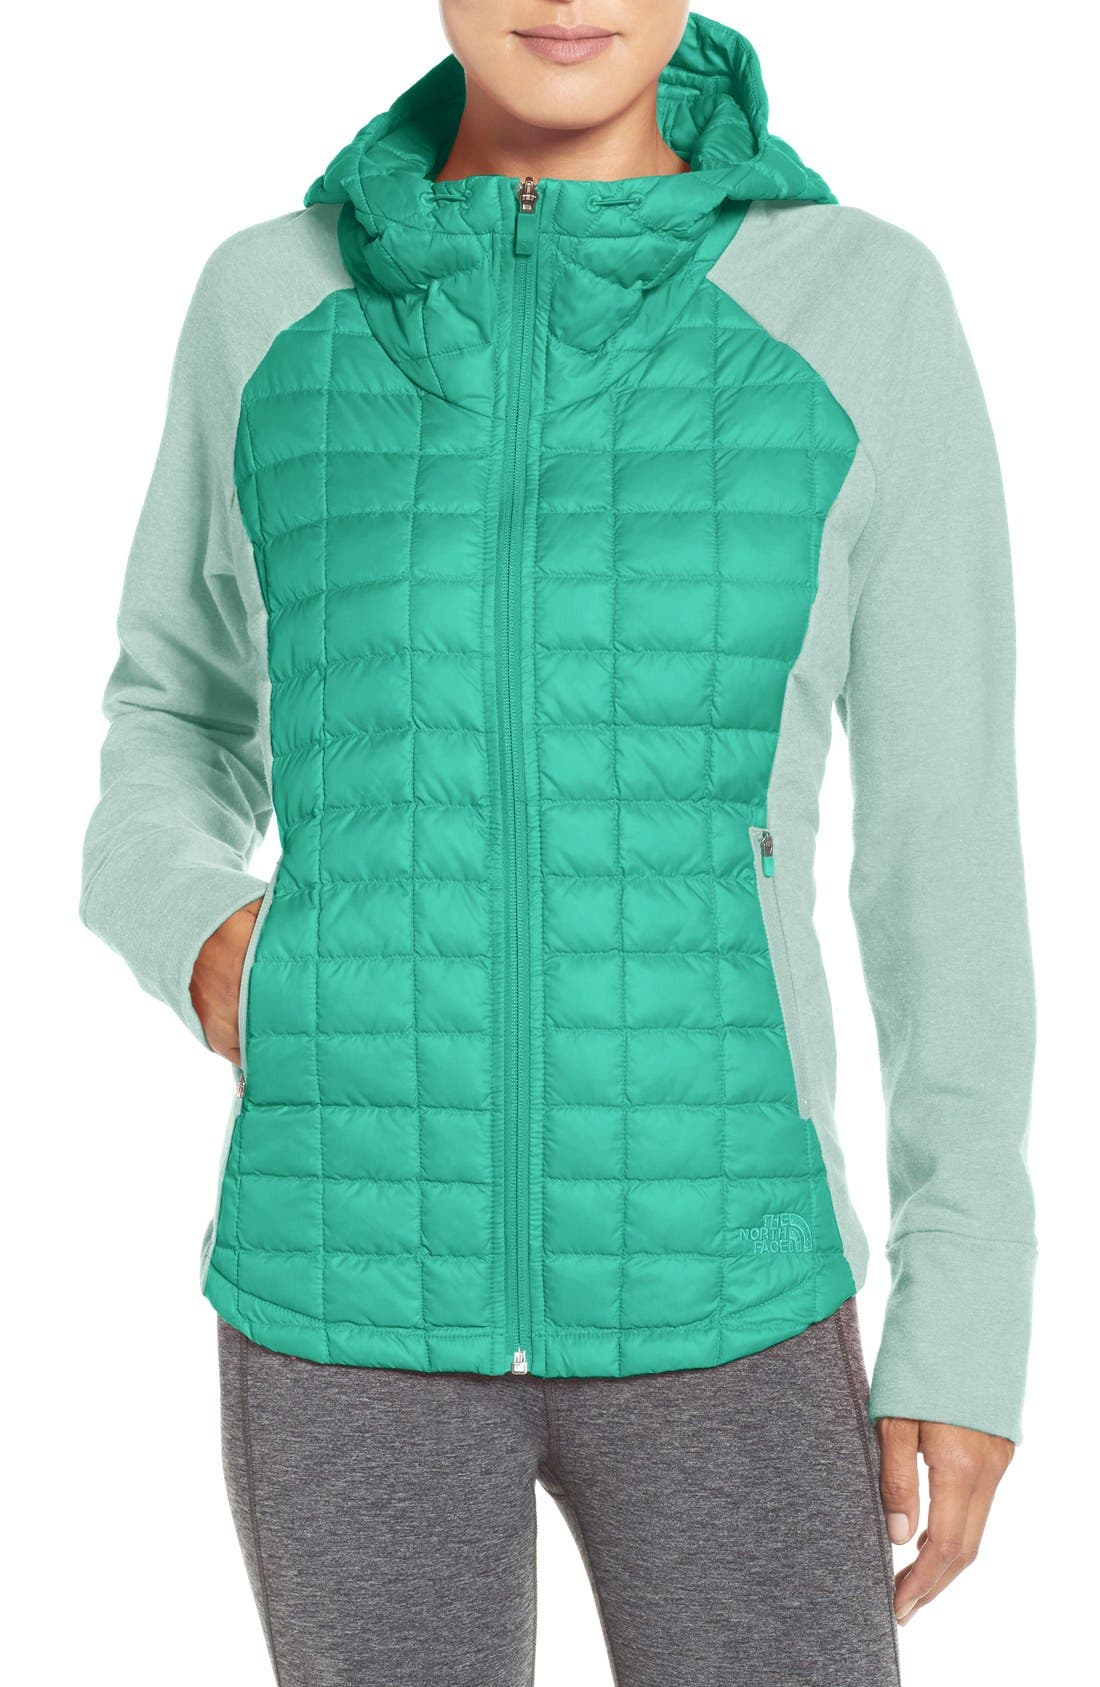 Main Image - The North Face 'Endeavor' ThermoBall PrimaLoft® Quilted Jacket